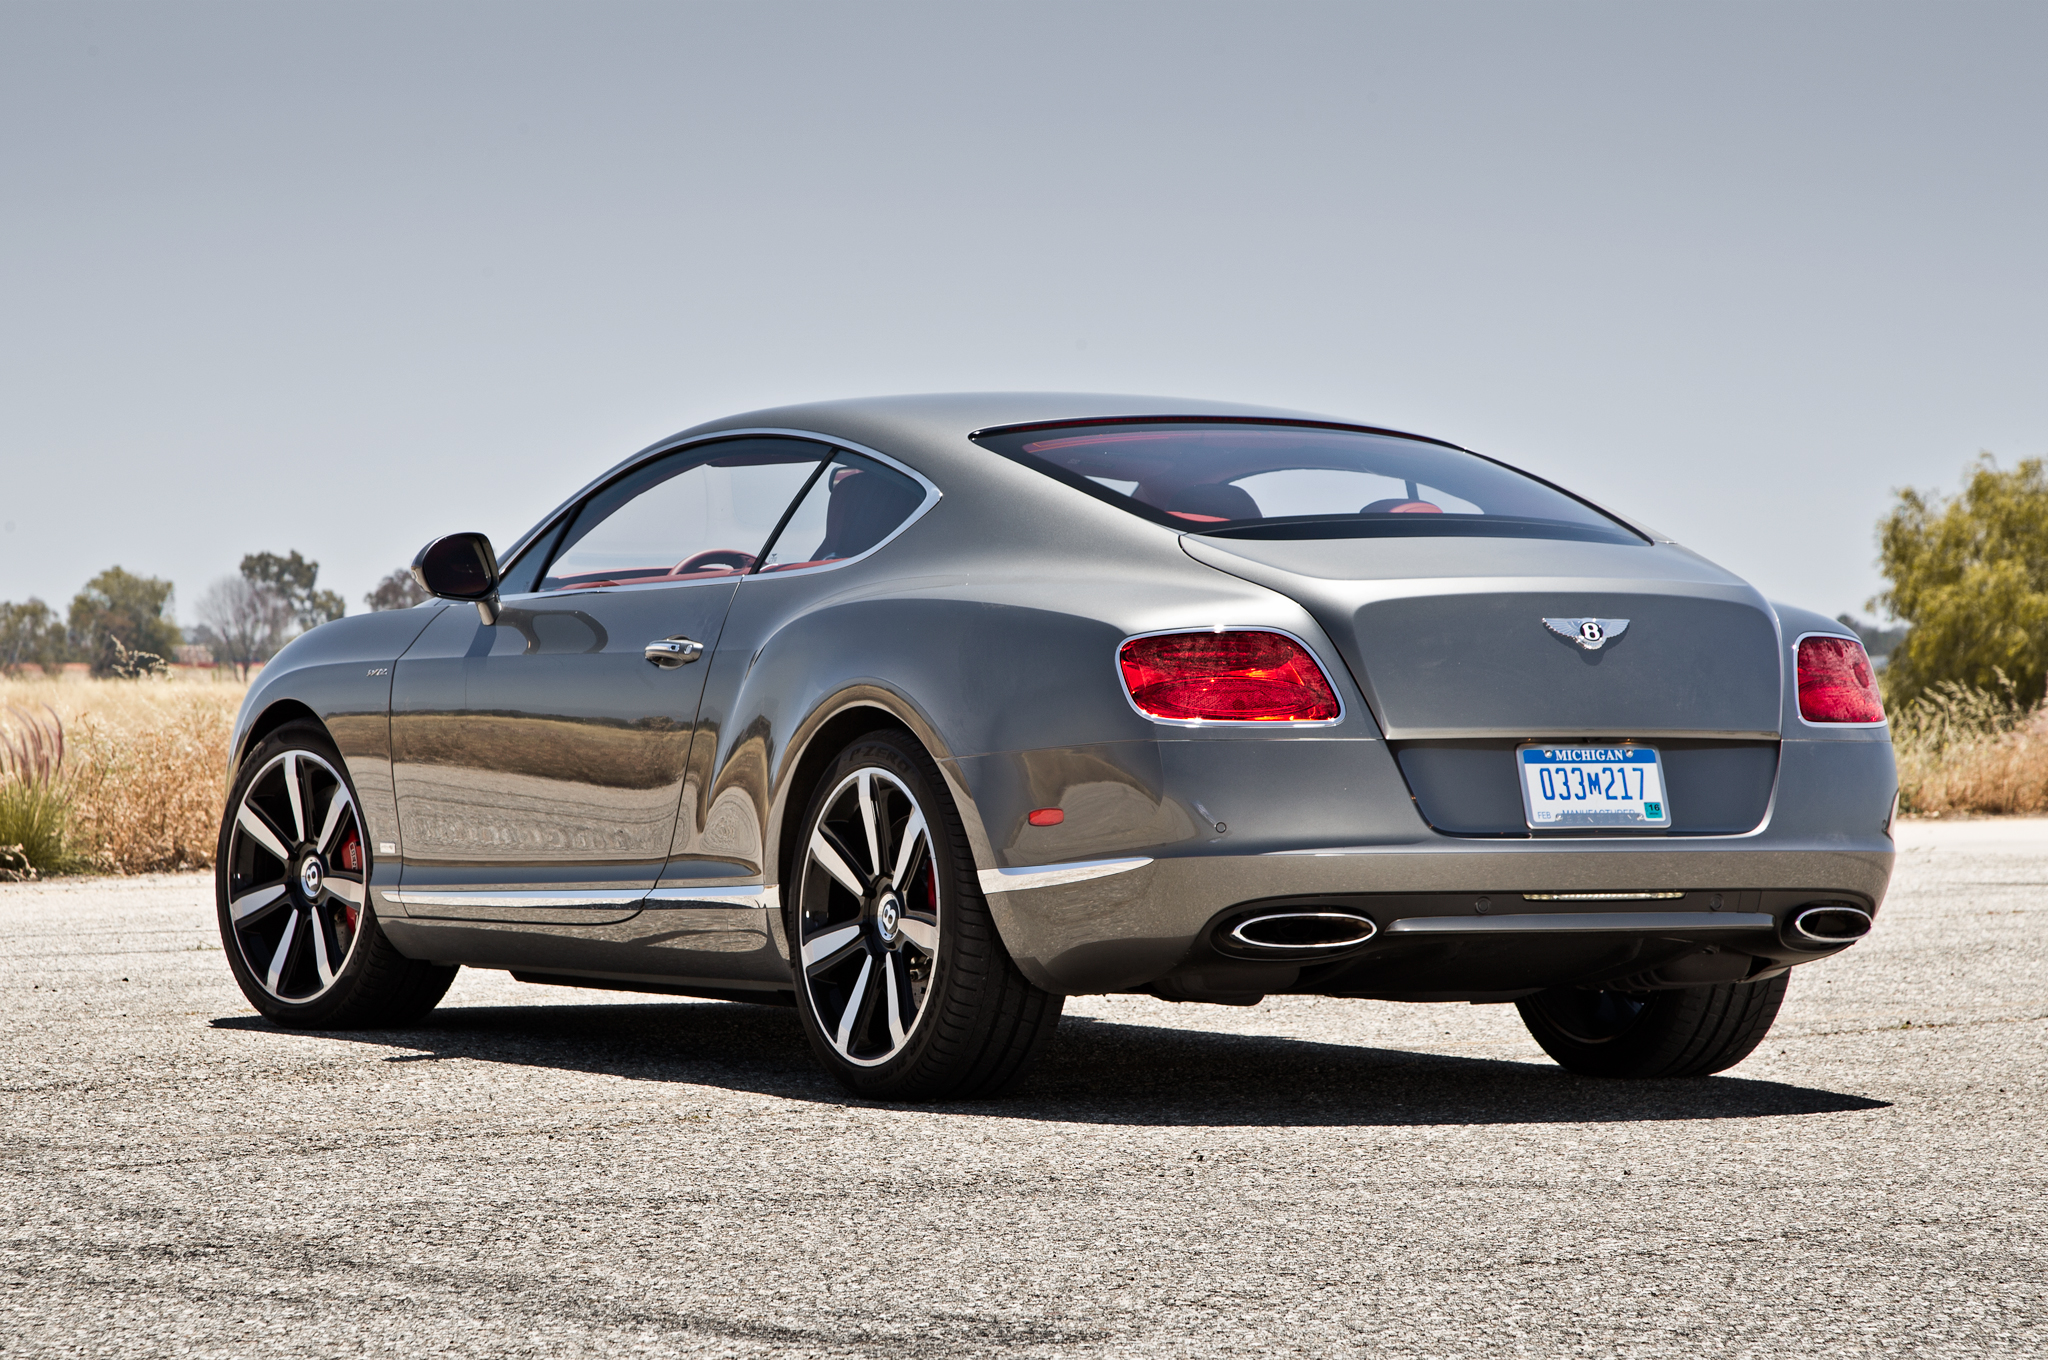 cars continental michigan in mi states on bentley gtc sale united for troy speed